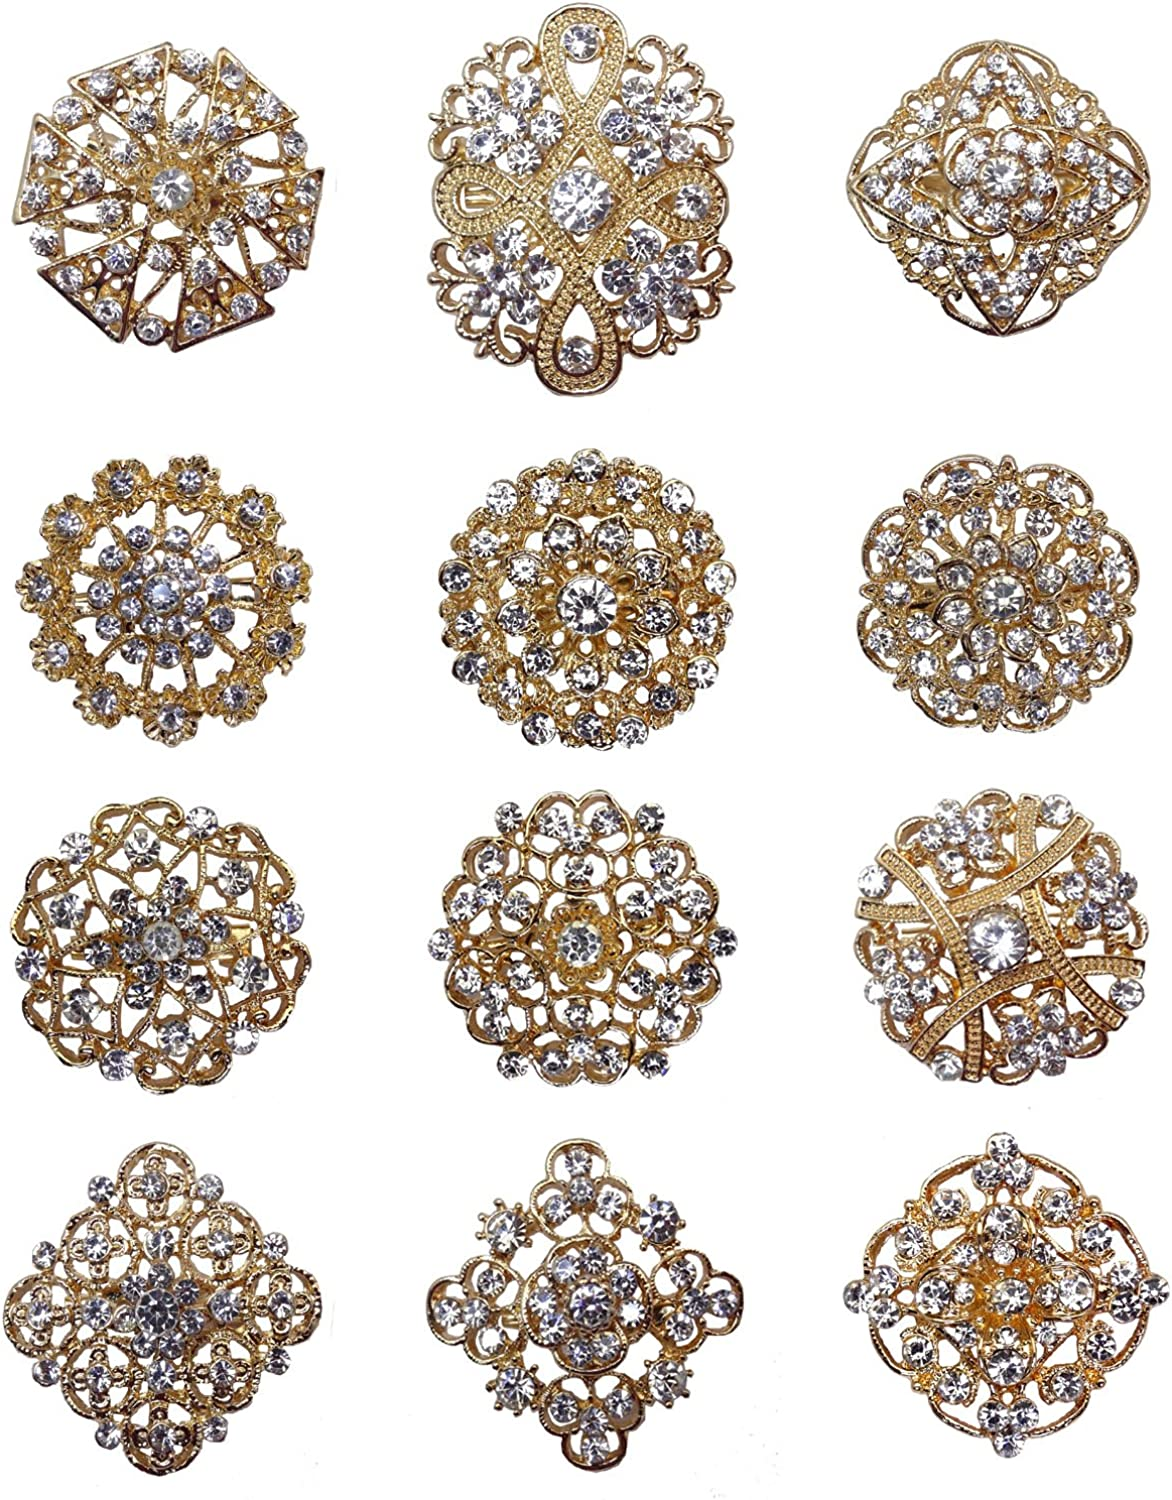 L'VOW 12px Silver Gold Plated Crystal Brooches Flower Floriated Brooch Collar Pin Rhinestone Corsage Bouquet Décor